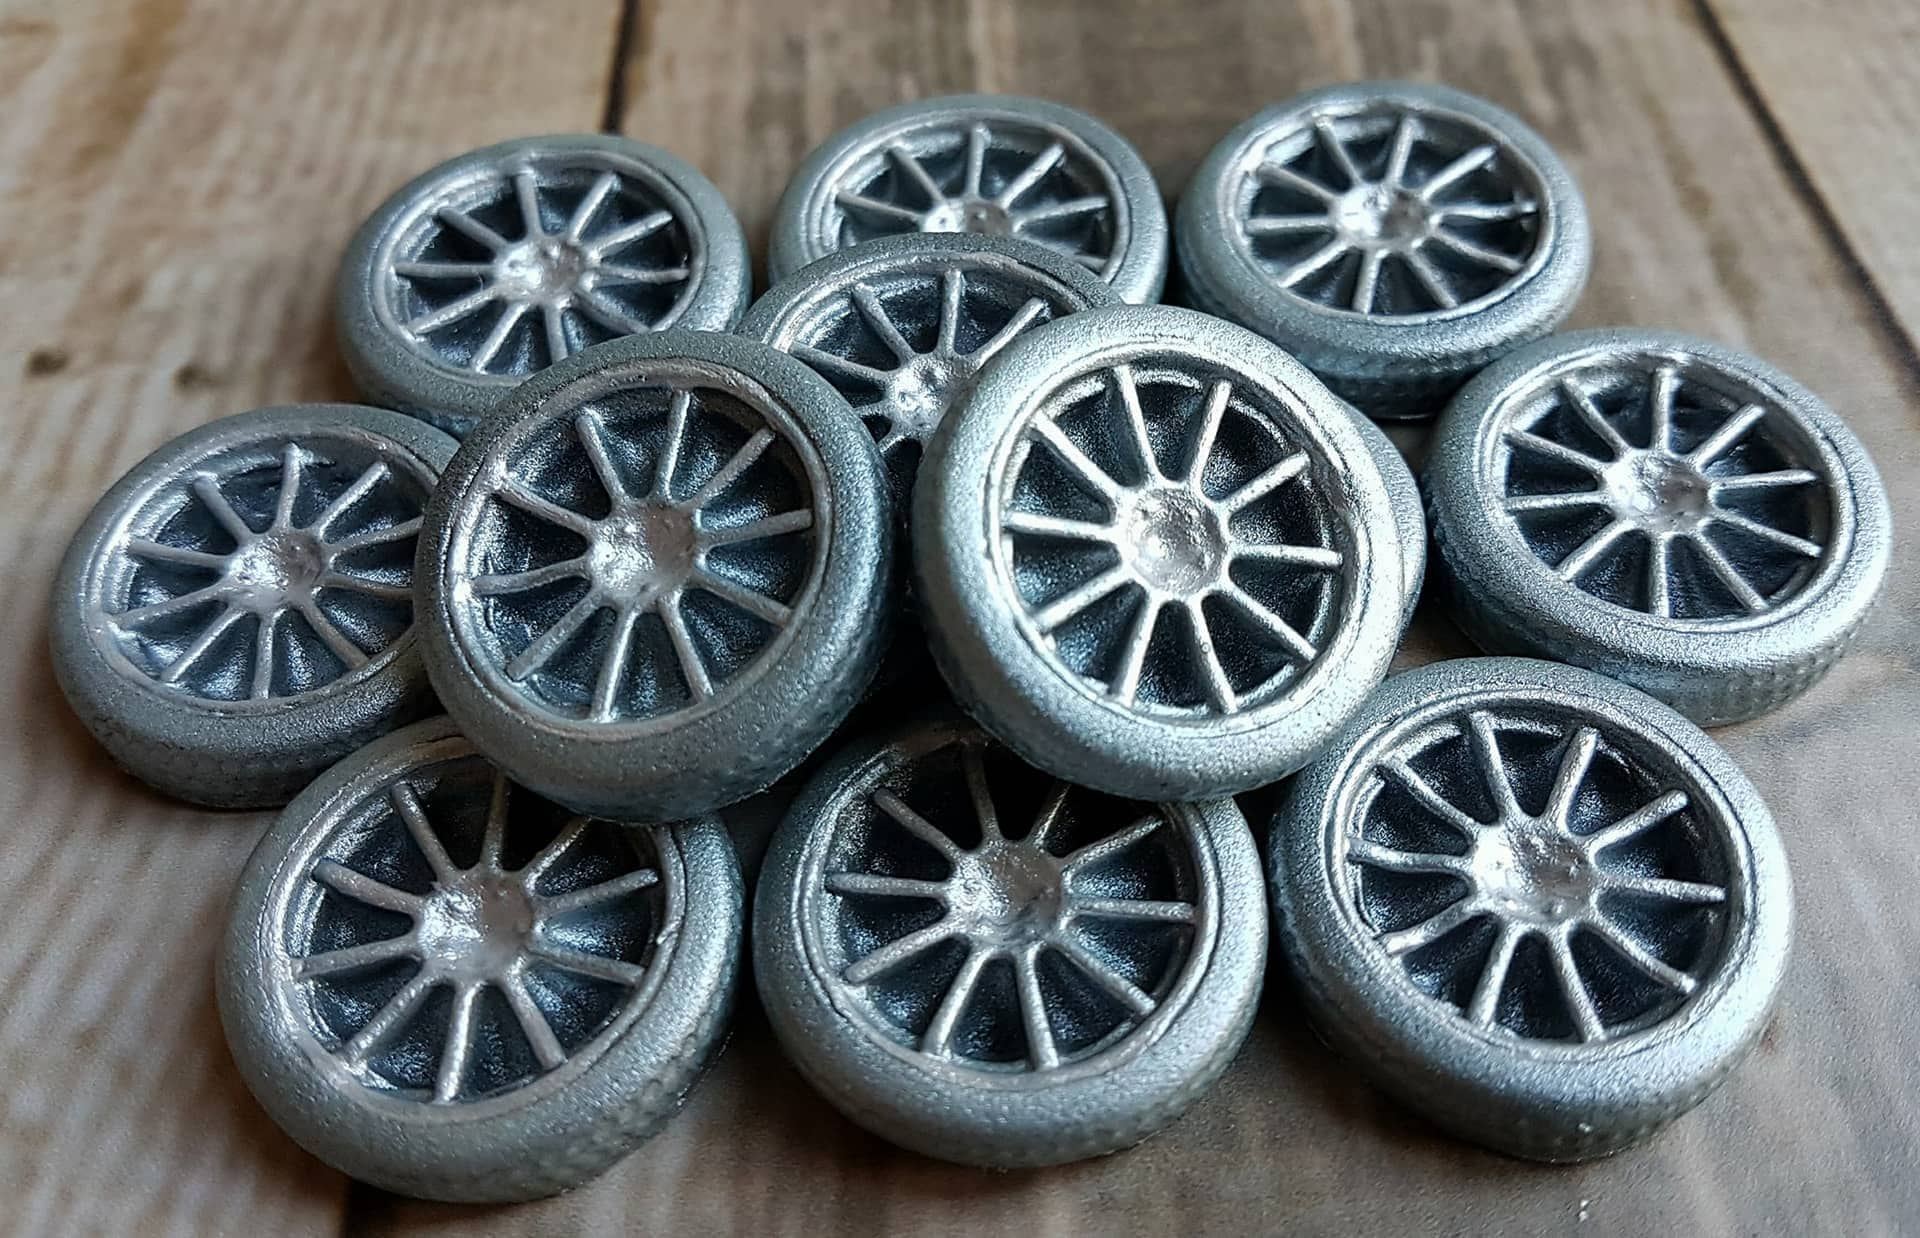 12 Edible Sugar Tires Wheels Cake Cupcake Toppers Decorations Mens Birthday Party